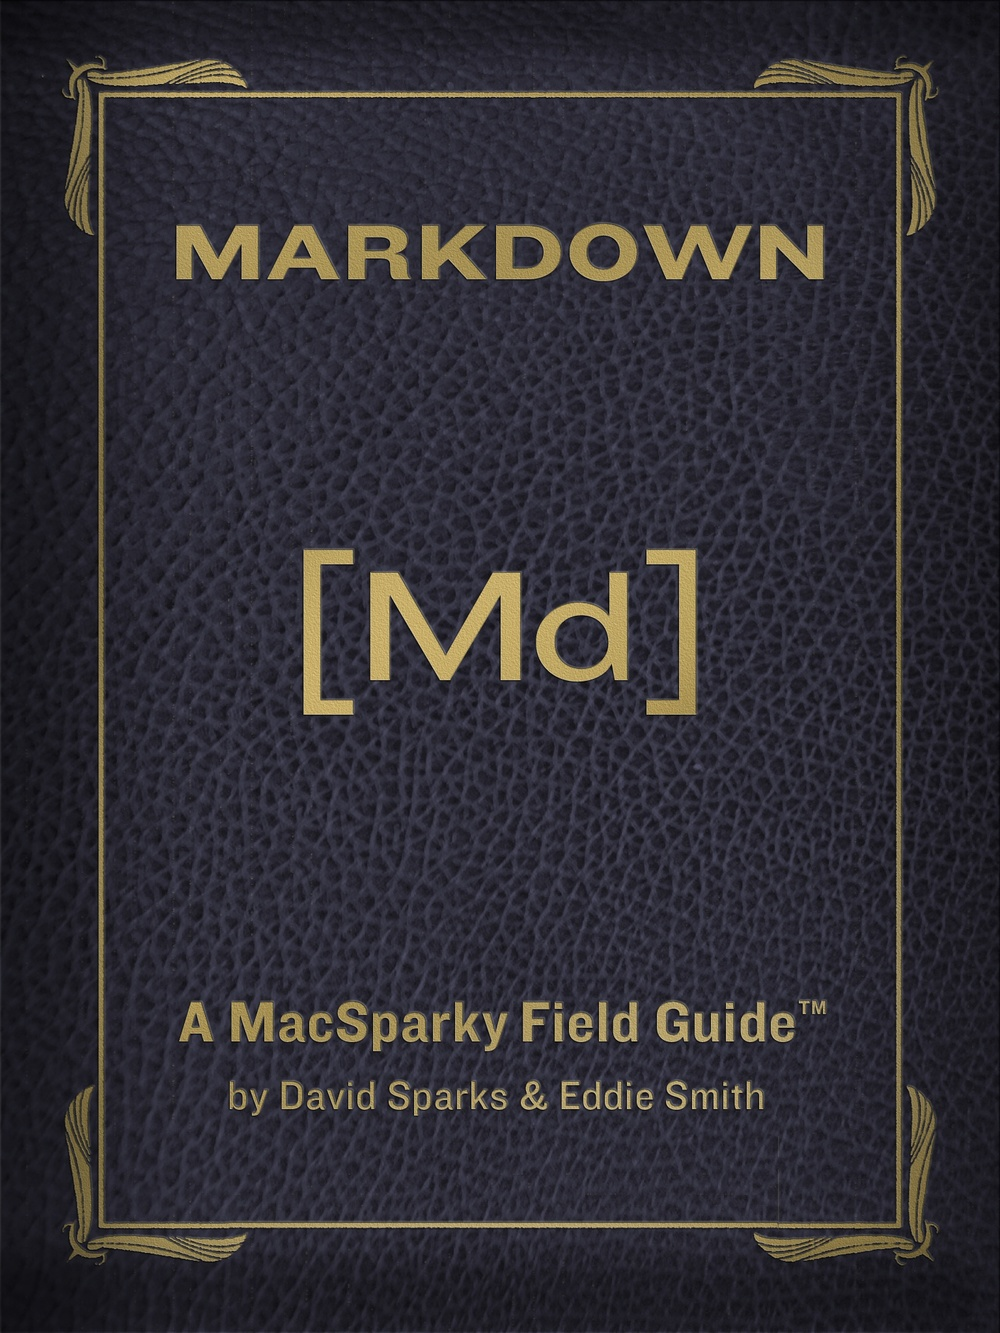 Markdown Field Guide